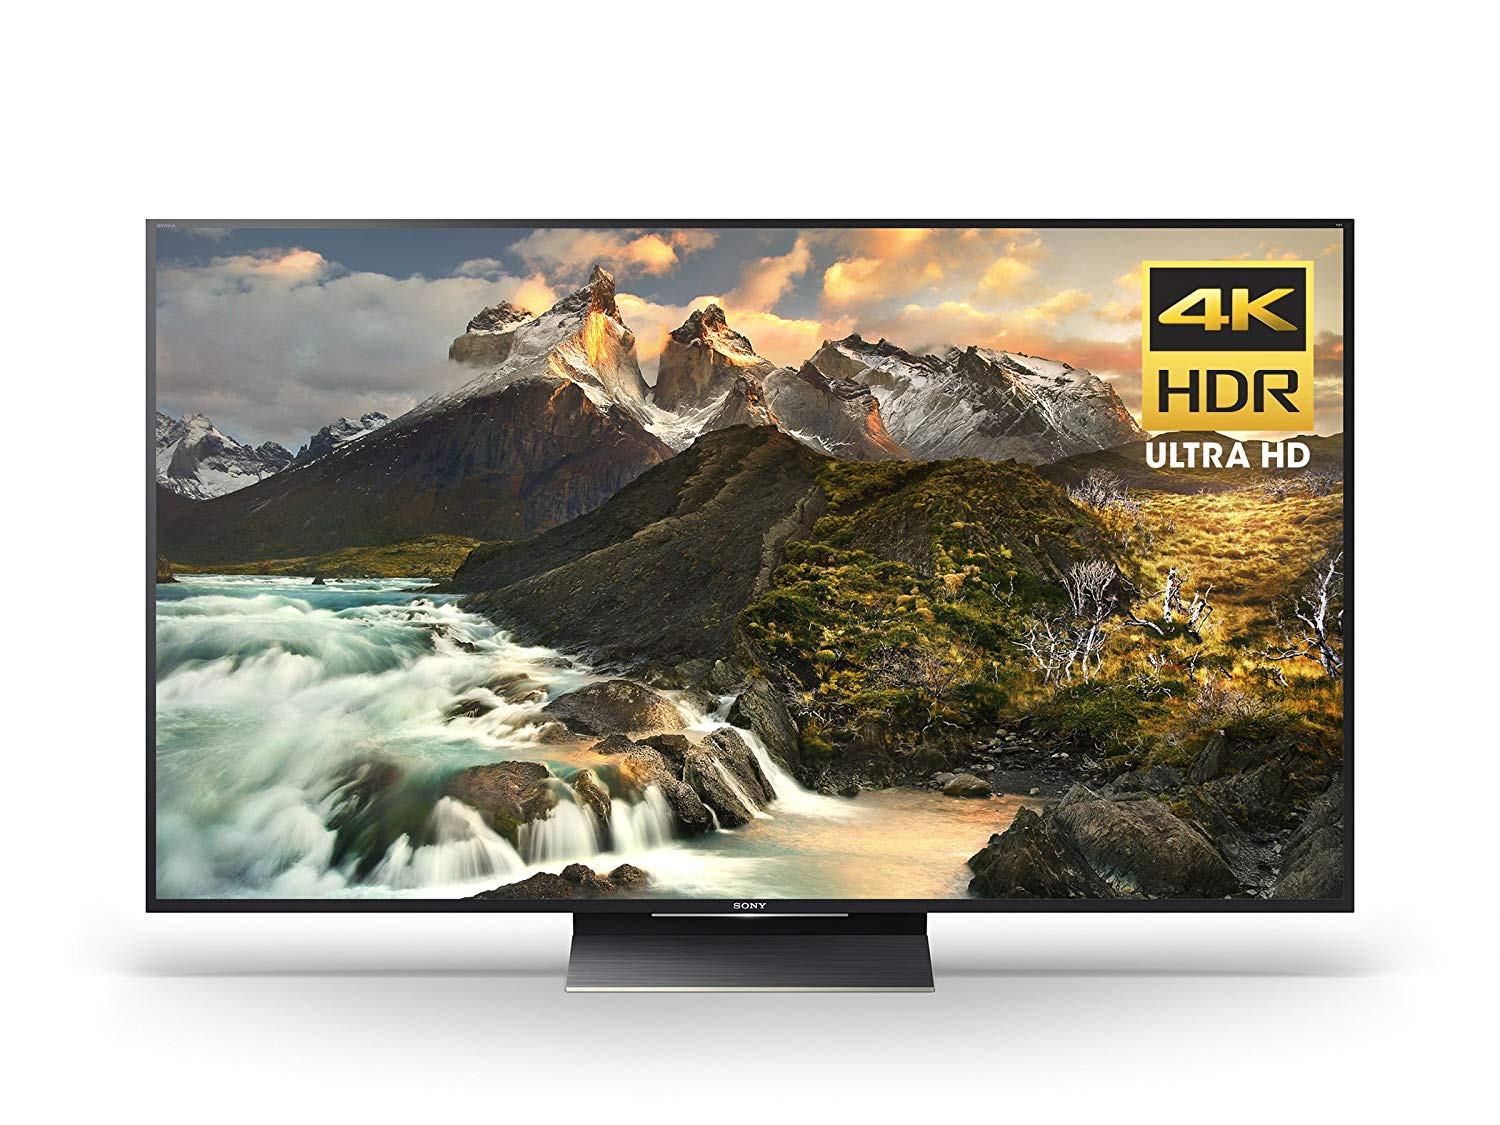 An image related to Sony XBR75Z9D 75-Inch HDR 3D 4K LED 120Hz Smart TV with Sony Motionflow XR 1440